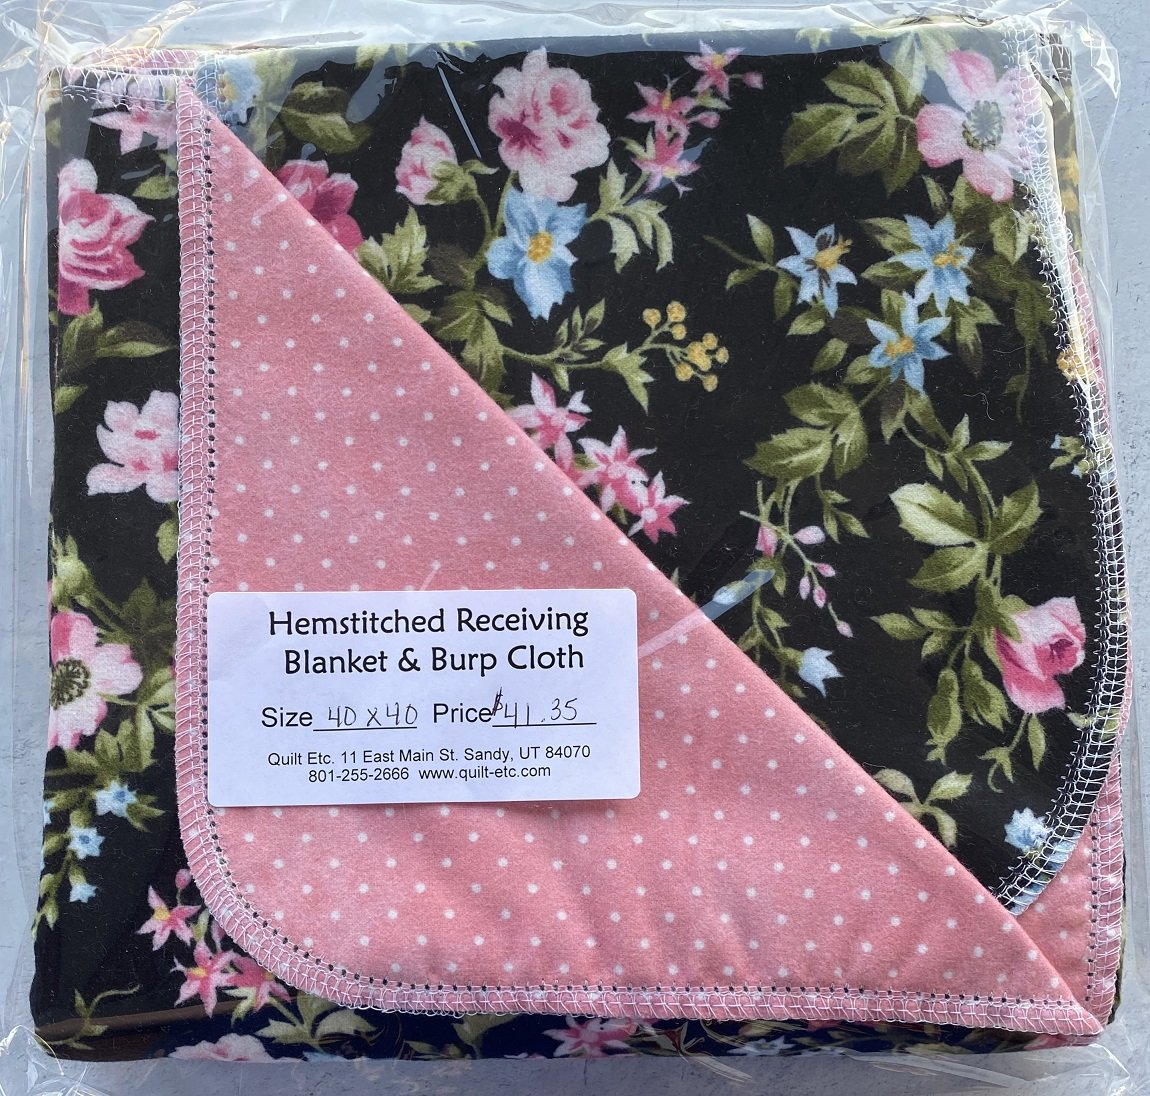 Hemstitched Receiving Blanket & Burp Cloth 21